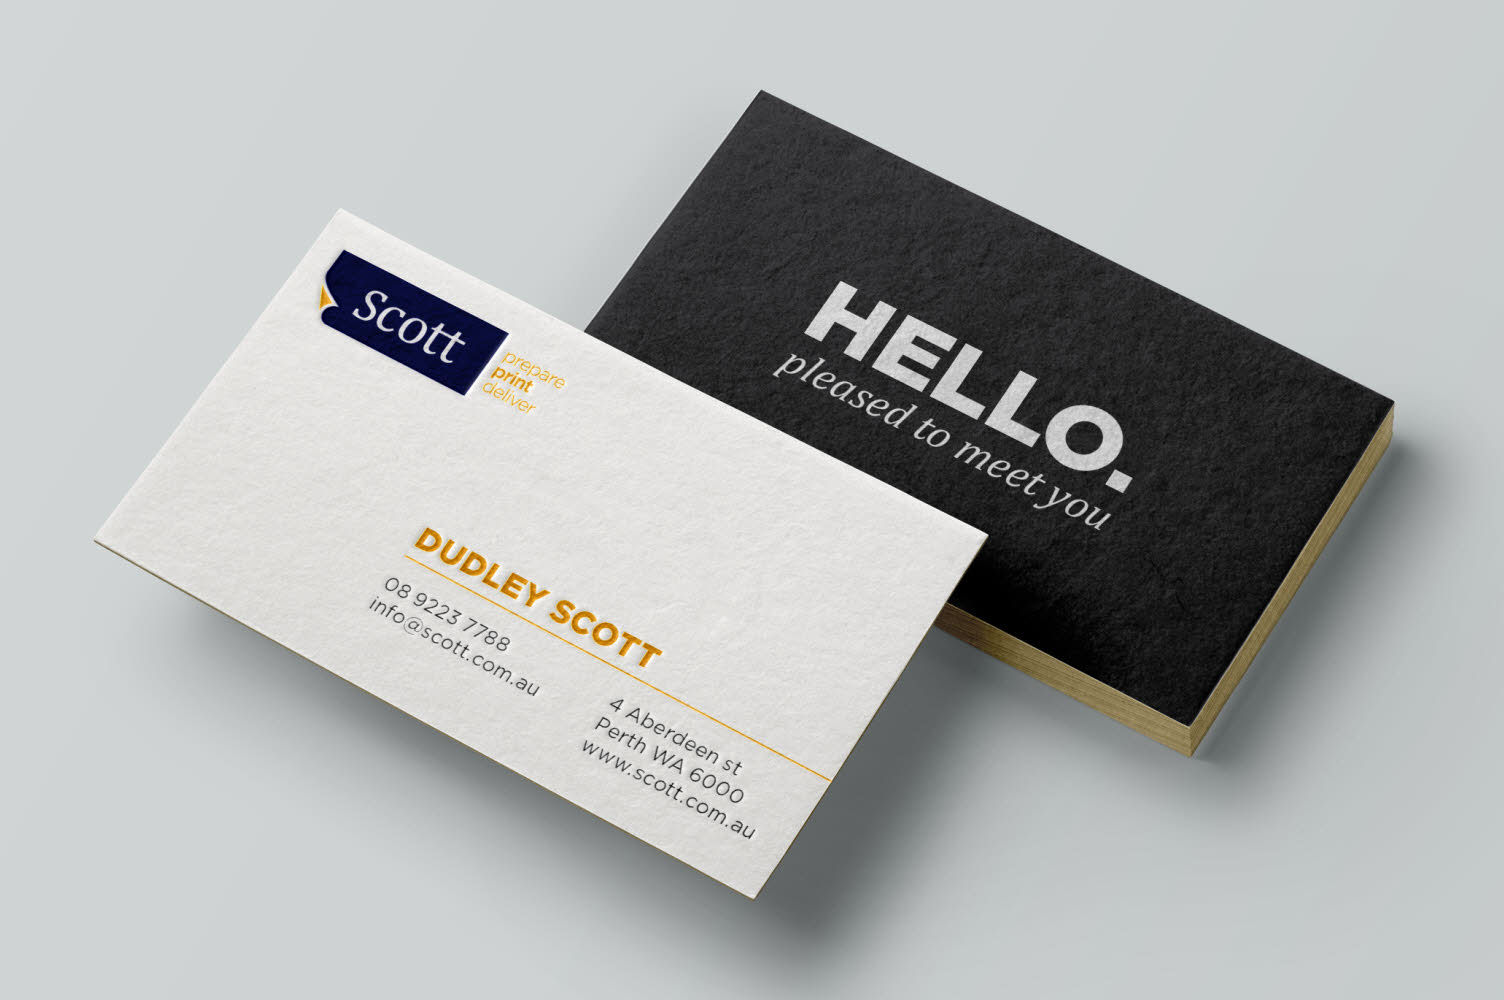 Business card printing perth wa scott print whether you hand over a plain card or well designed embellished business card it is a reflection on your business and sets the standard of expectation reheart Images